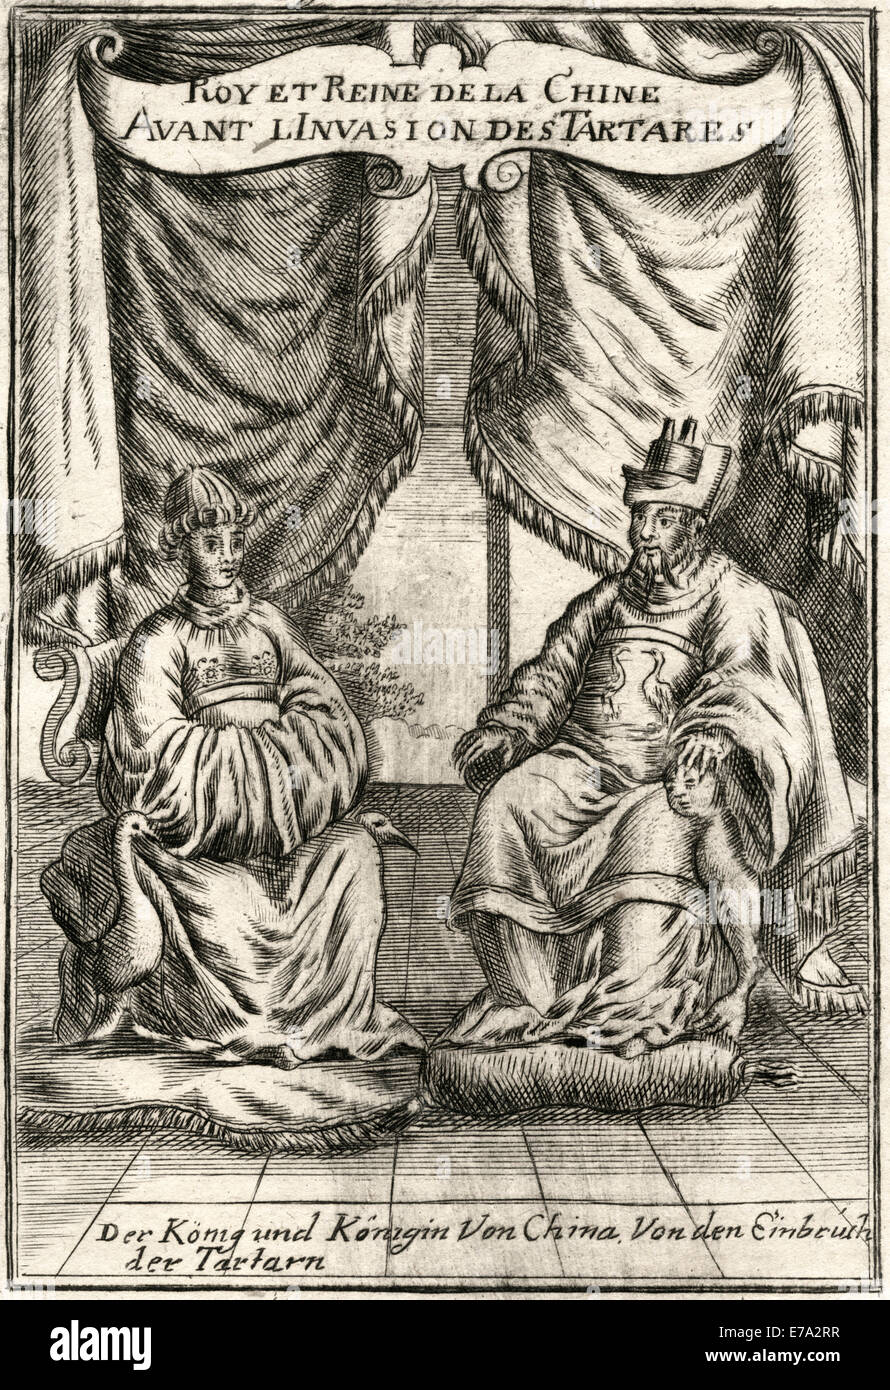 Chongzhen Emperor (1611-1644) 16th and Last Emperor of Ming Dynasty in China, with Empress Zhuang Lie Min, Woodcut, - Stock Image